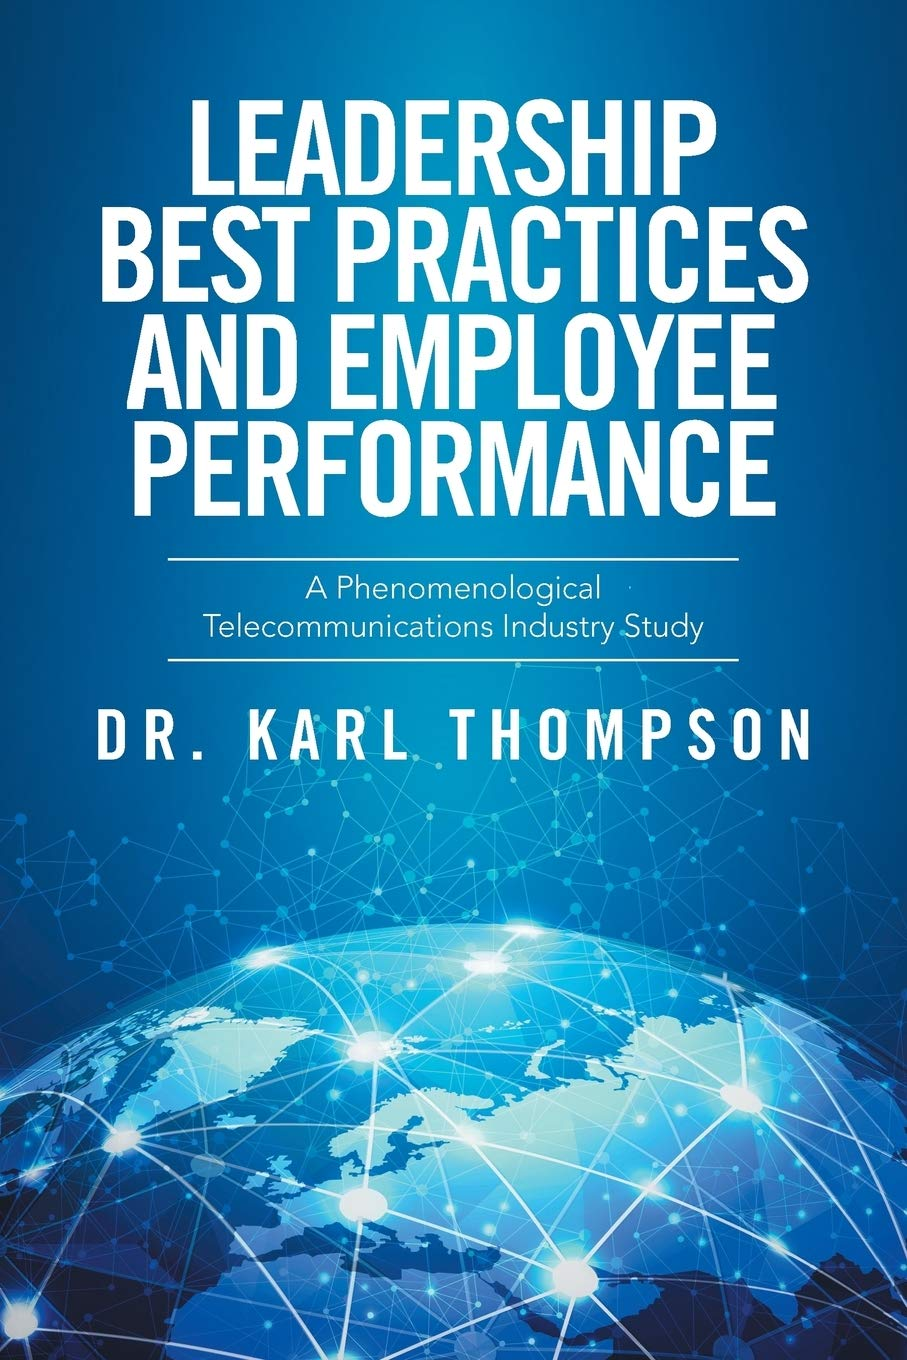 Leadership Best Practices and Employee Performance